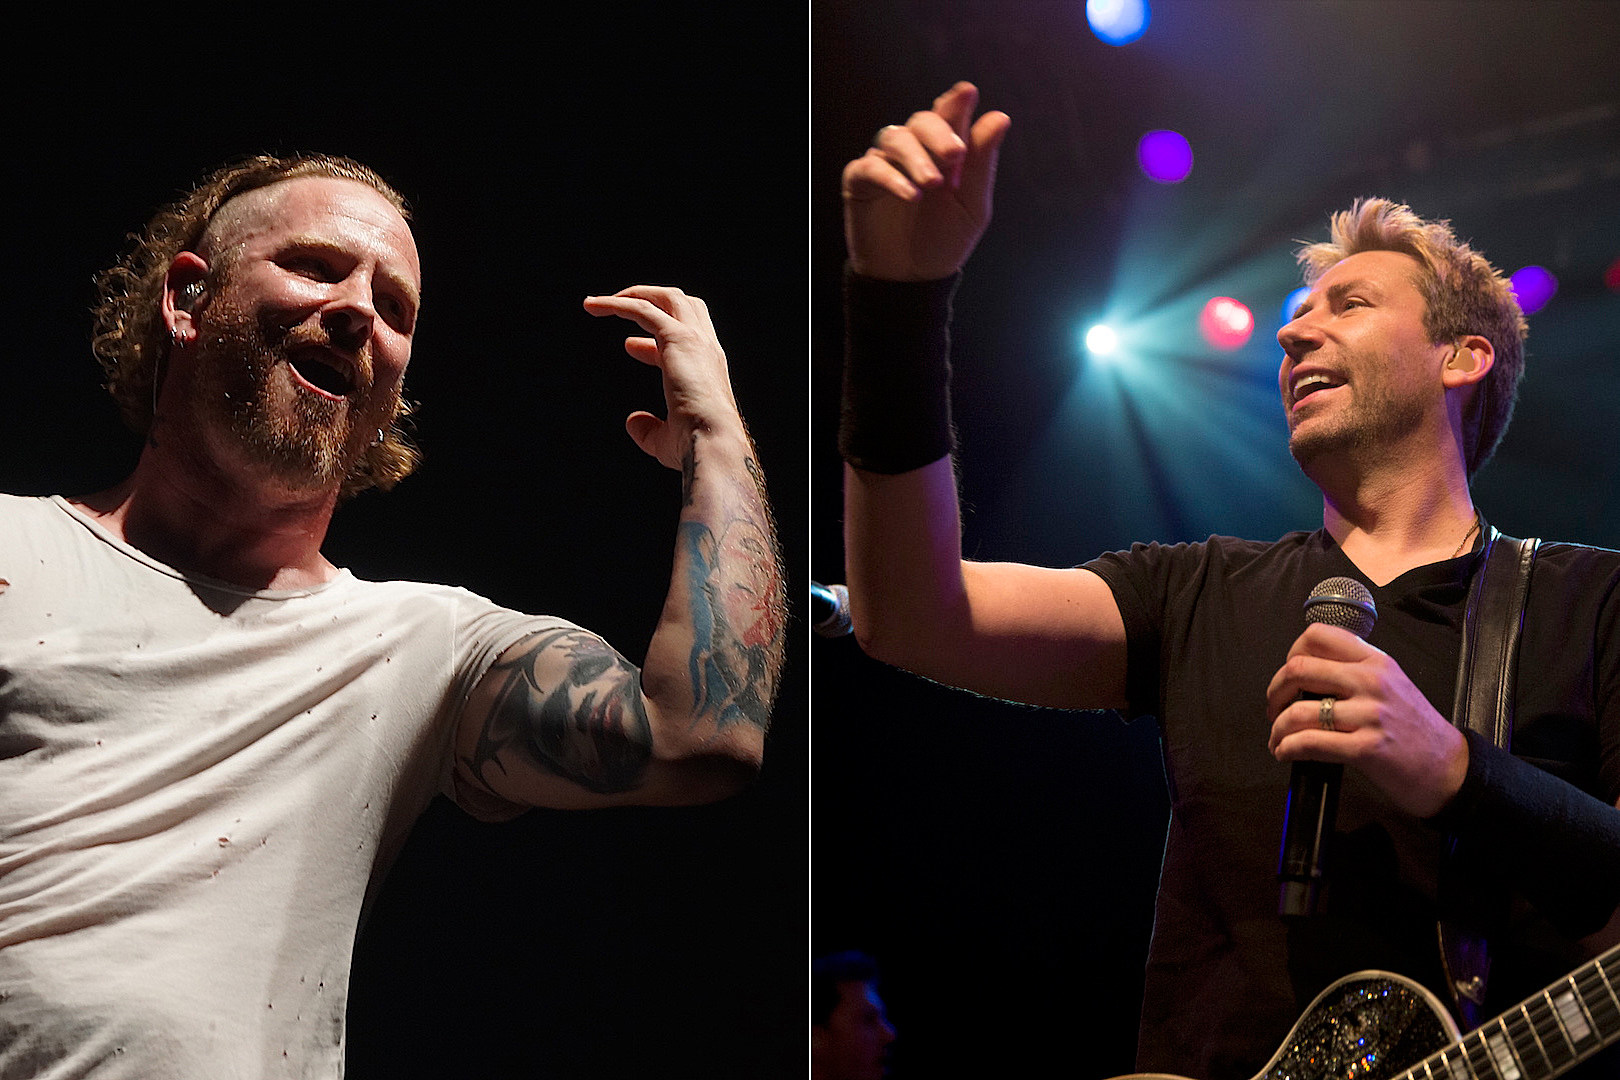 Corey Taylor Reignites Nickelback Beef: 'Chad Kroeger Is to Rock What KFC Is to Chicken'